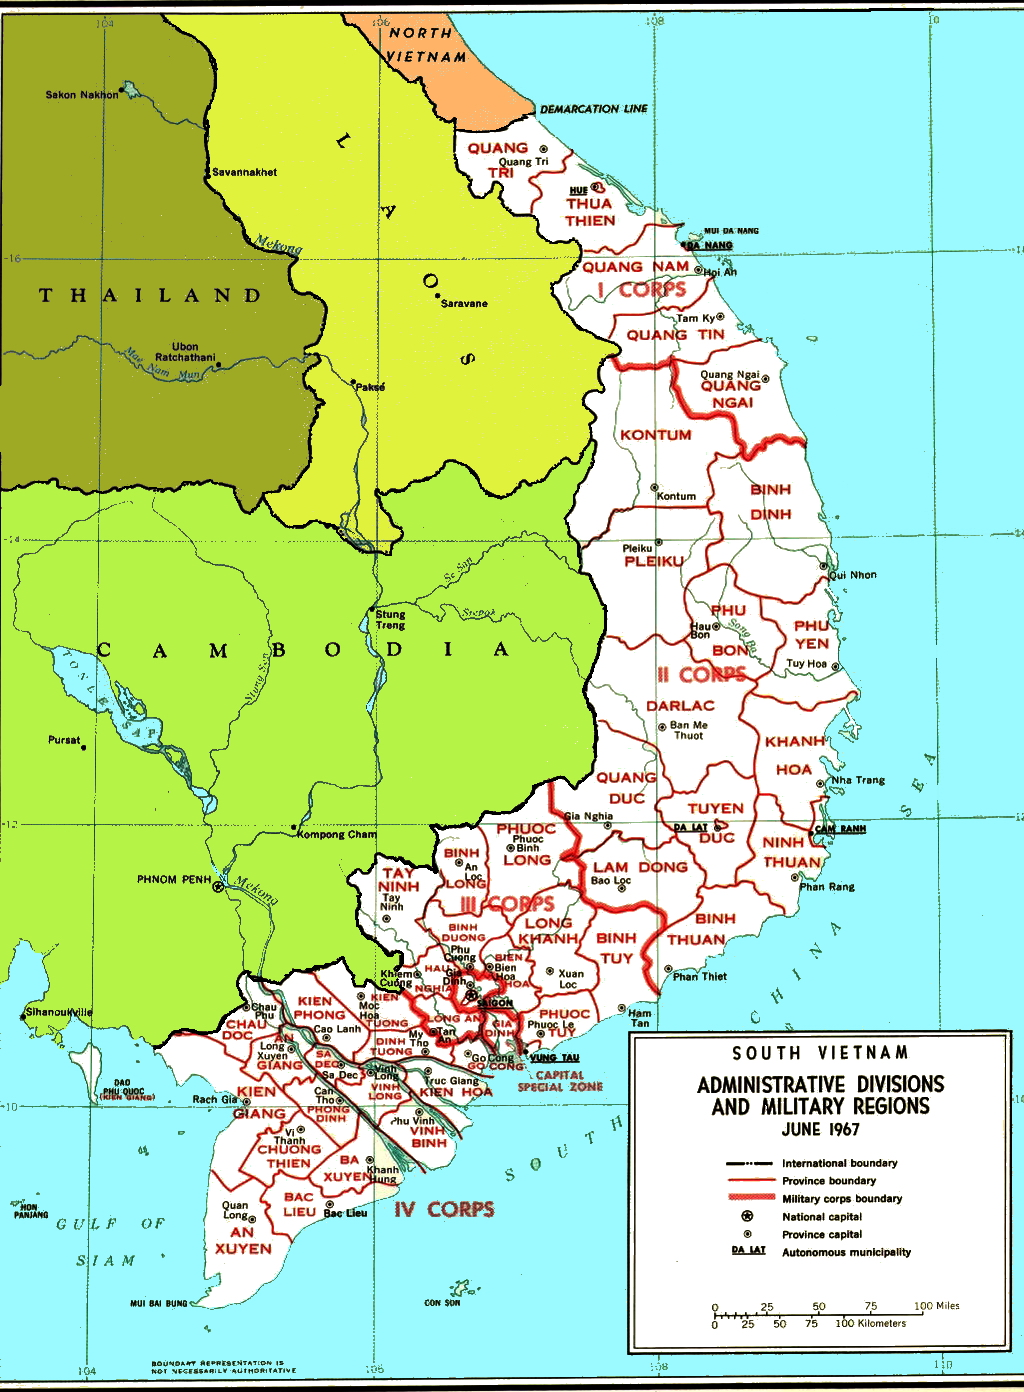 vietnam war resources rvn corps provinces map